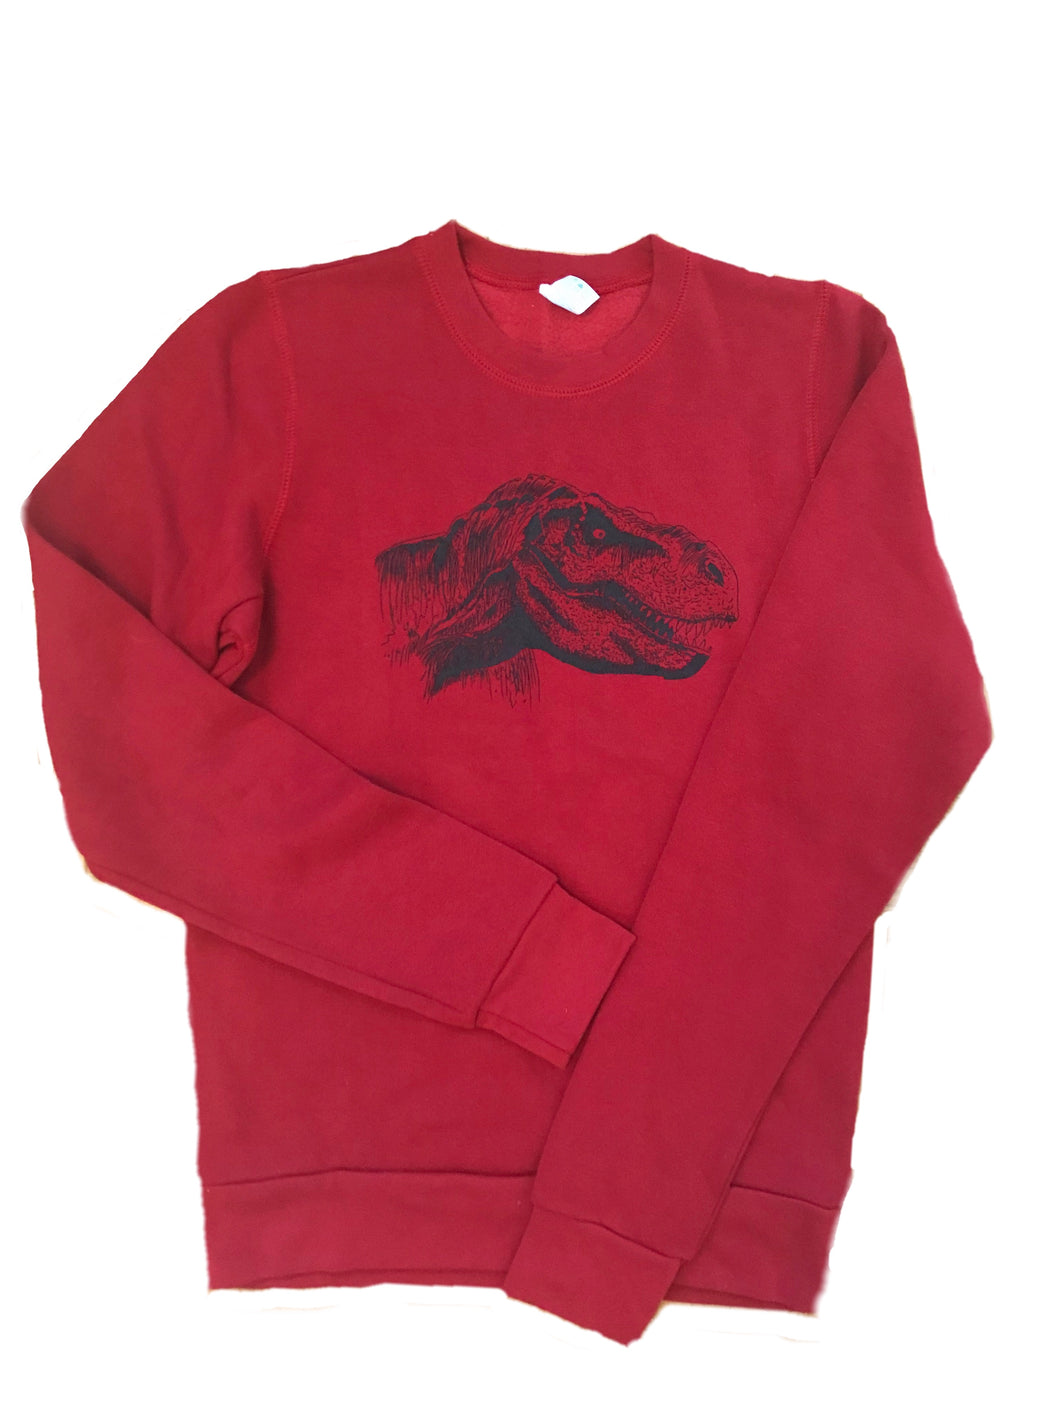 Three End Bamboo Fleece Crewneck Sweatshirt- Dinosaur